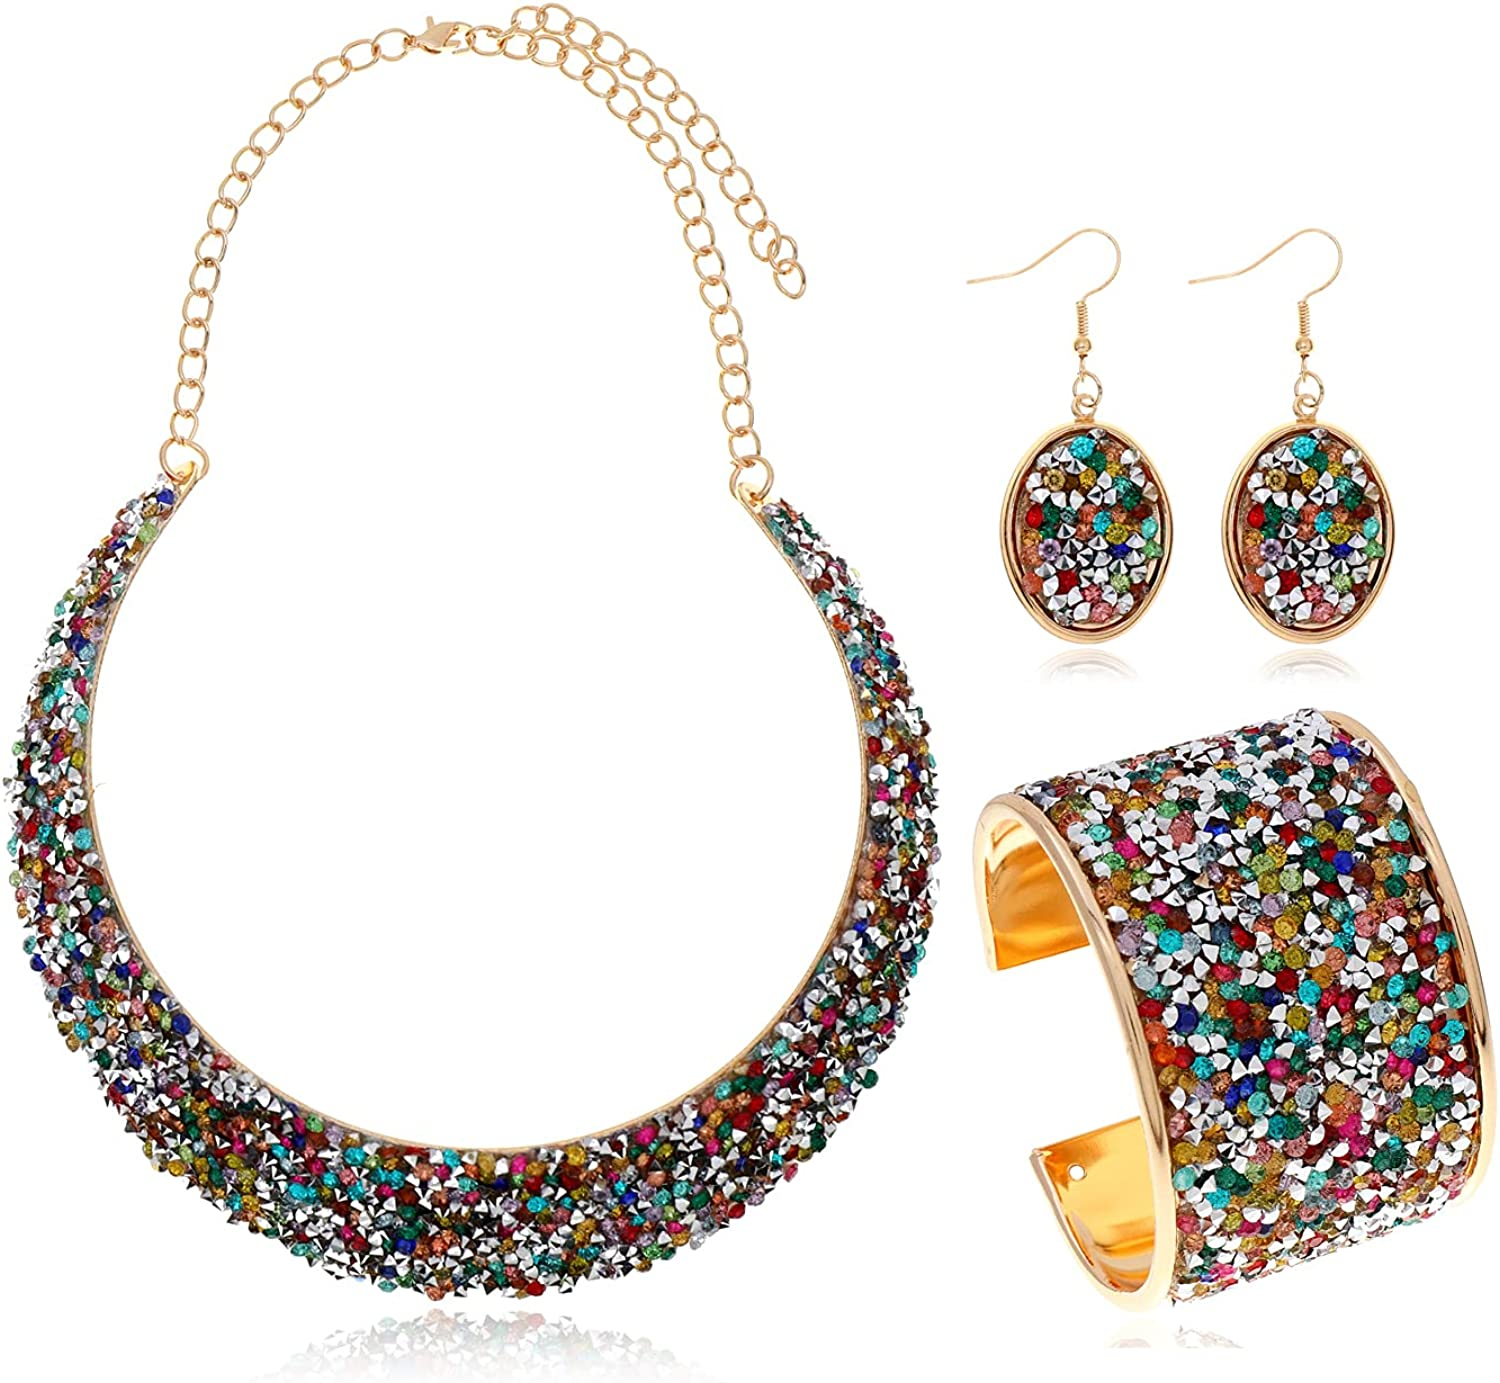 Rhinestone Collar Gold Metal Necklace For Women Statement Collars Necklaces Jewelry accessories Sets